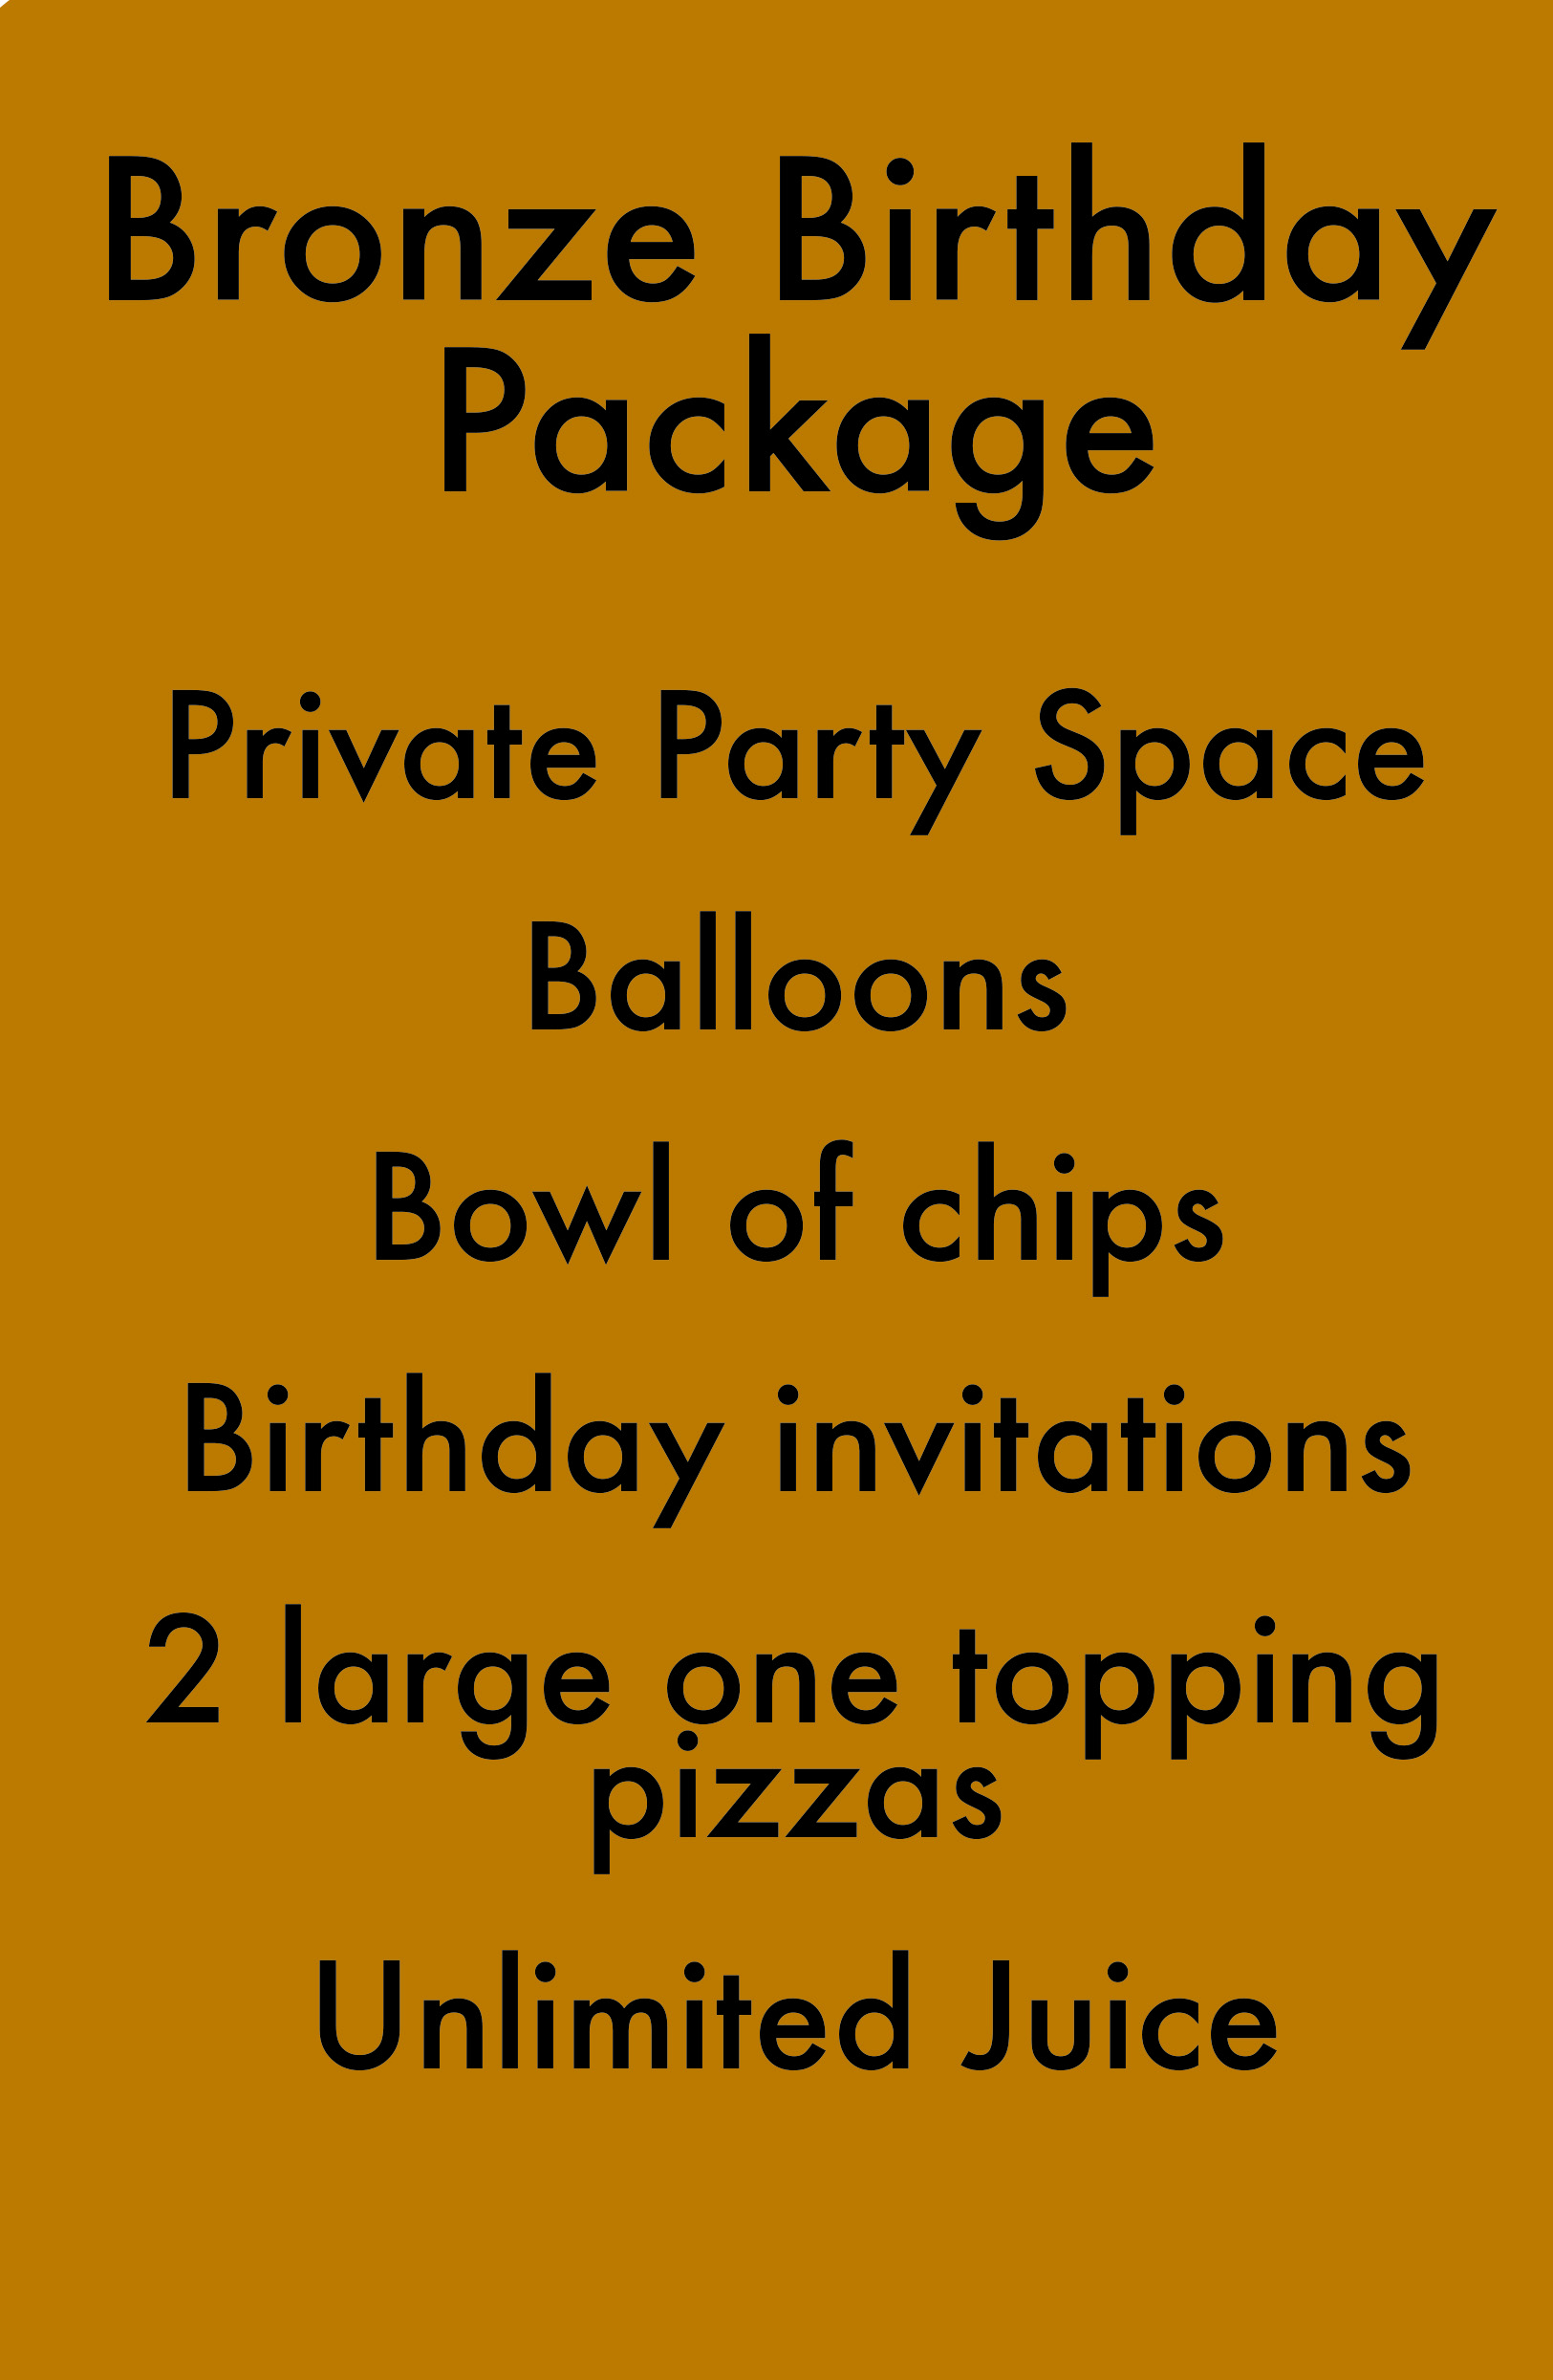 Our standard birthday package. All of the basics to have a great party. -